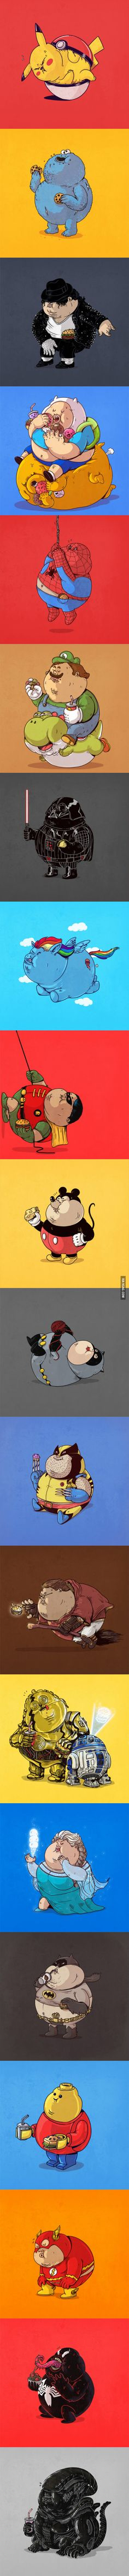 Morbidly Obese Pop Culture Icons.